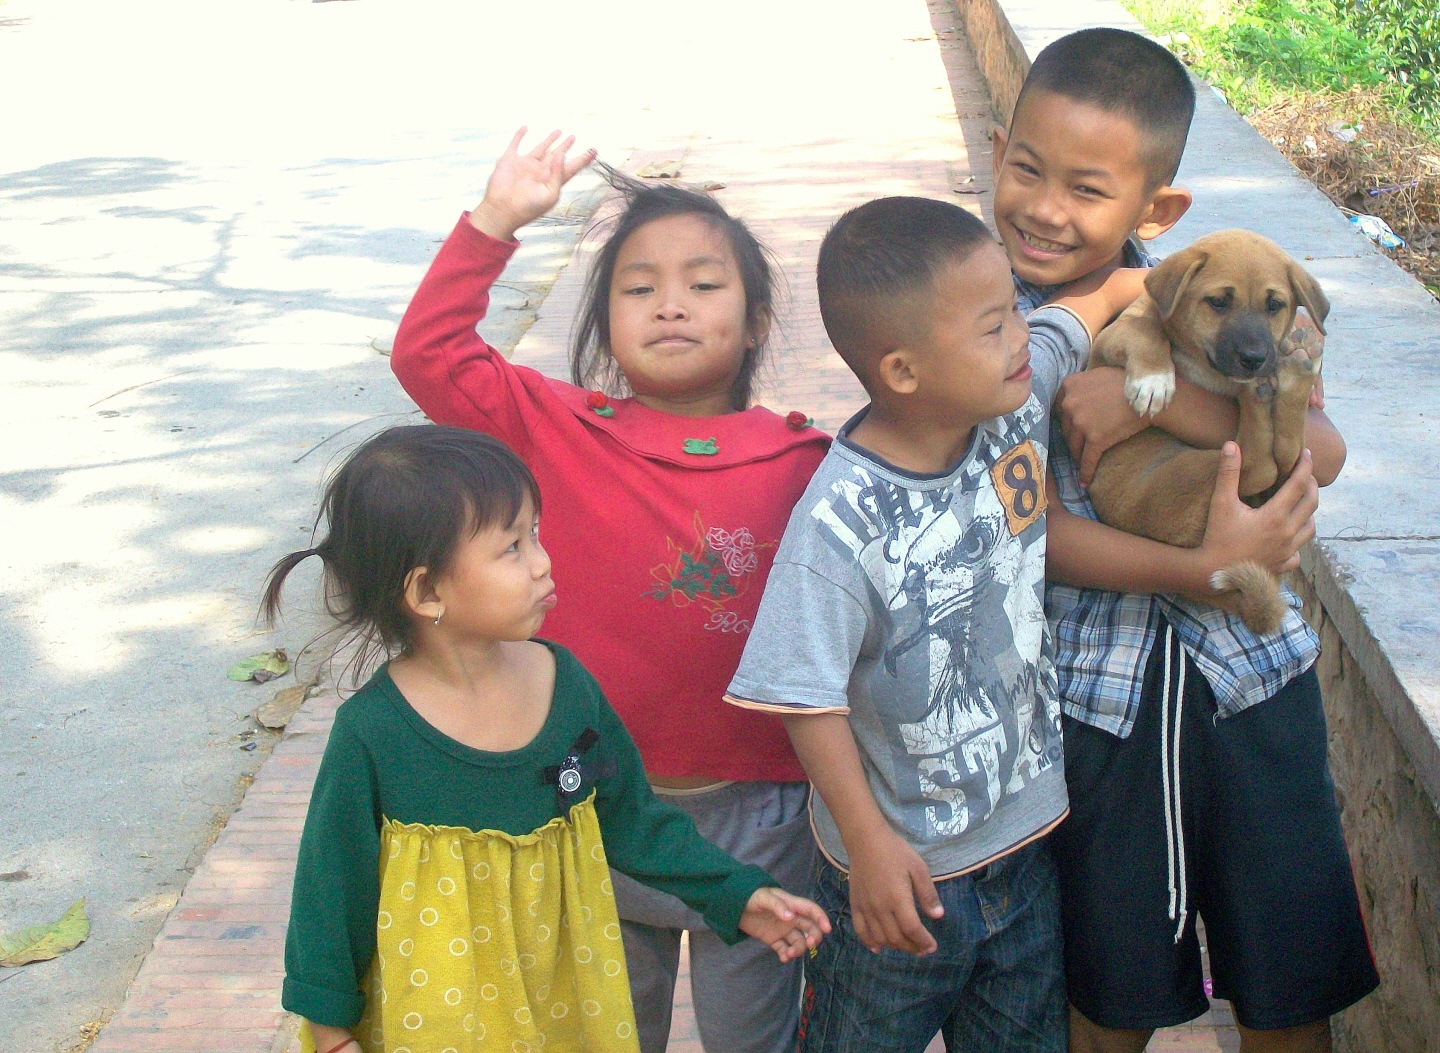 Children with New Friend - Luang Prabang, Laos